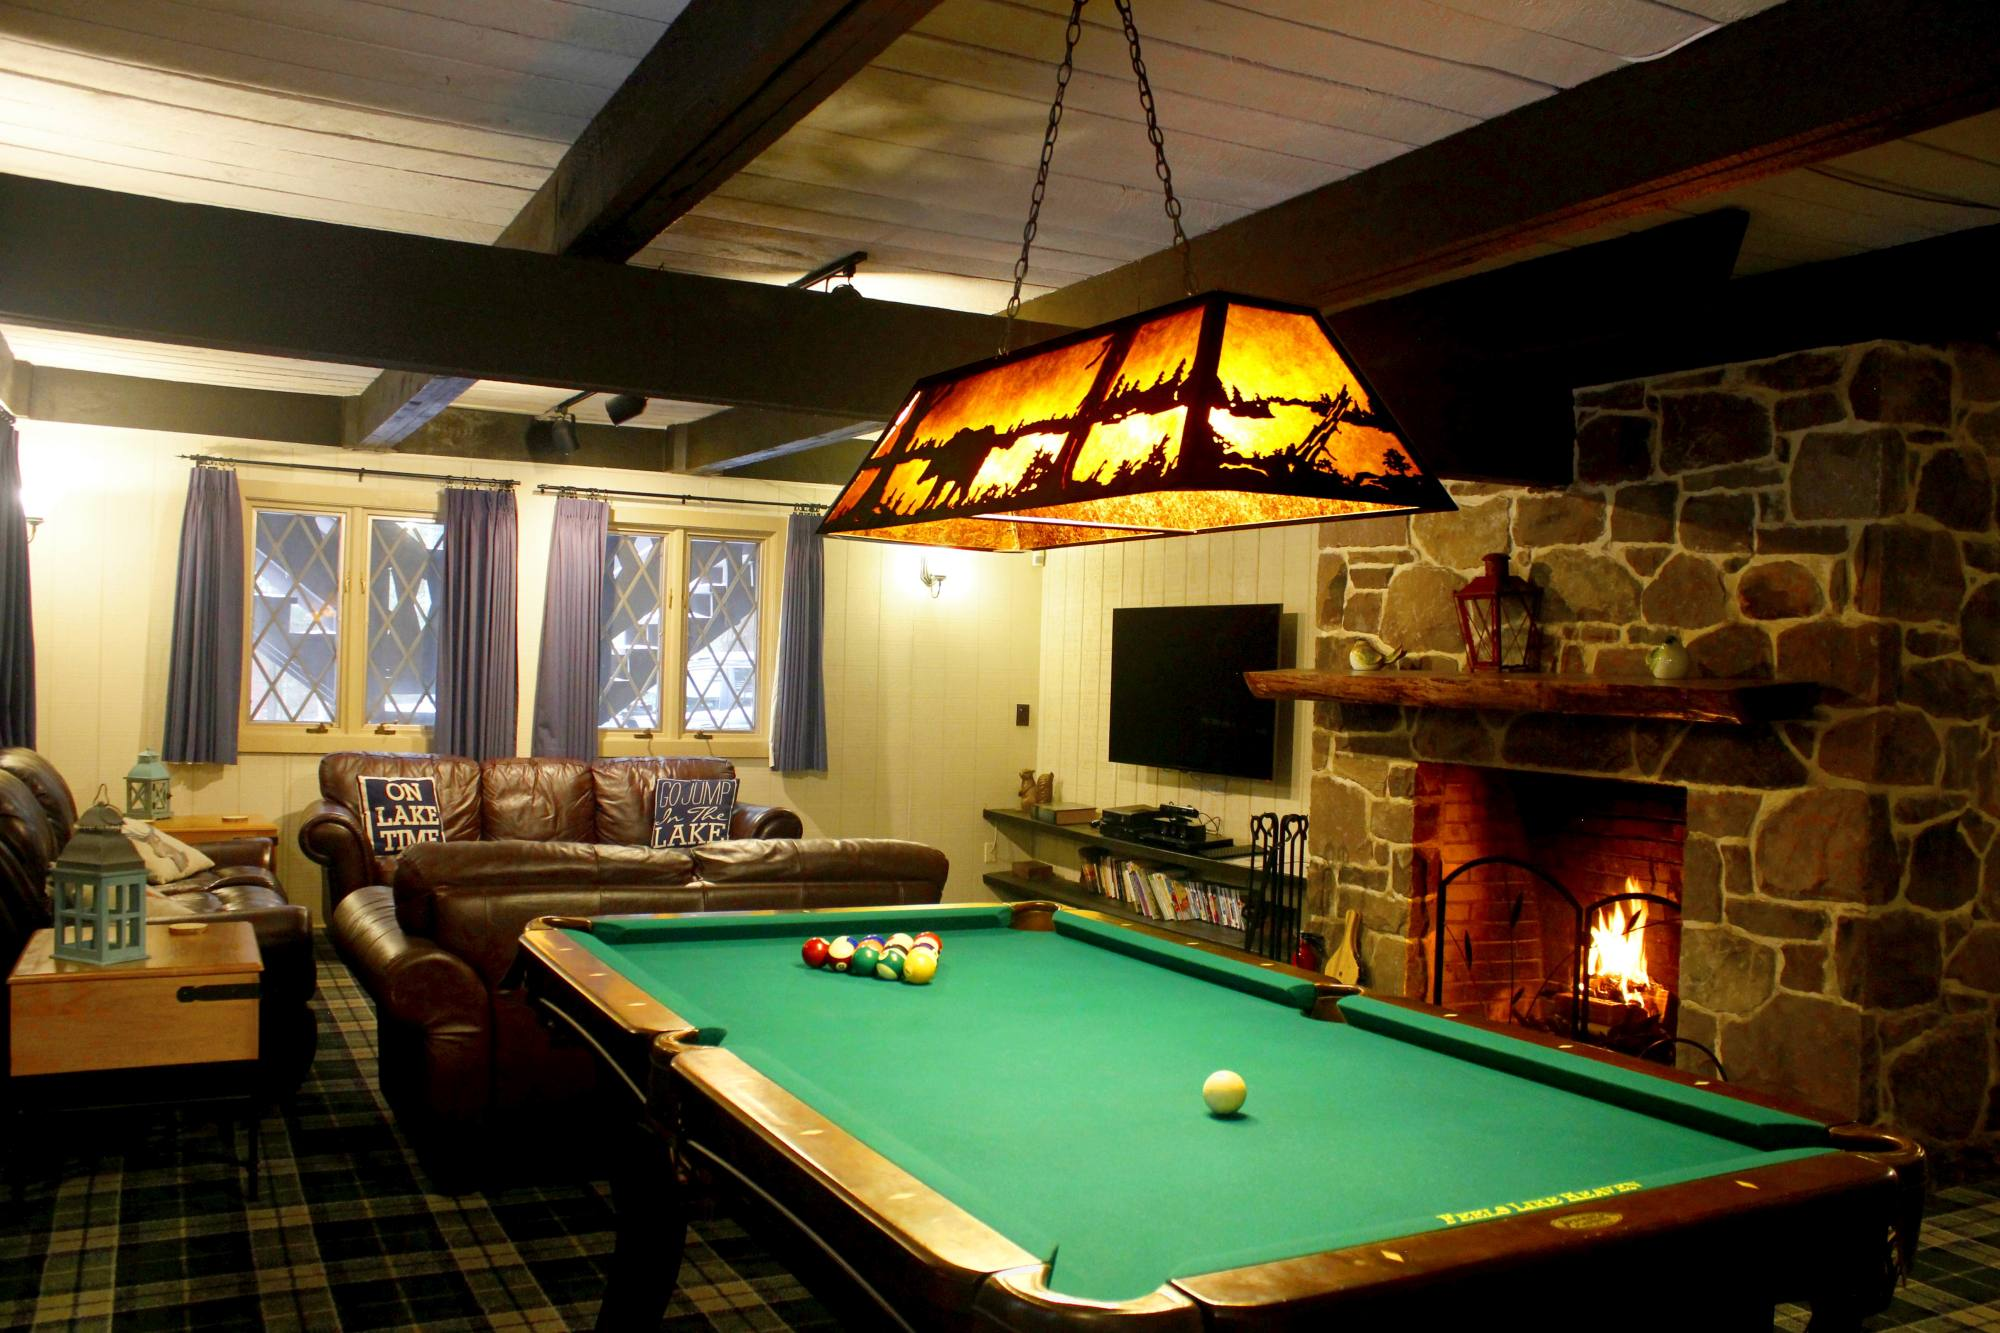 Feels Like Heaven - 5 Bedroom Poconos Vacation Rental House - Family Room / Great room With Large Fireplace Pool Table And 65 Inch TV